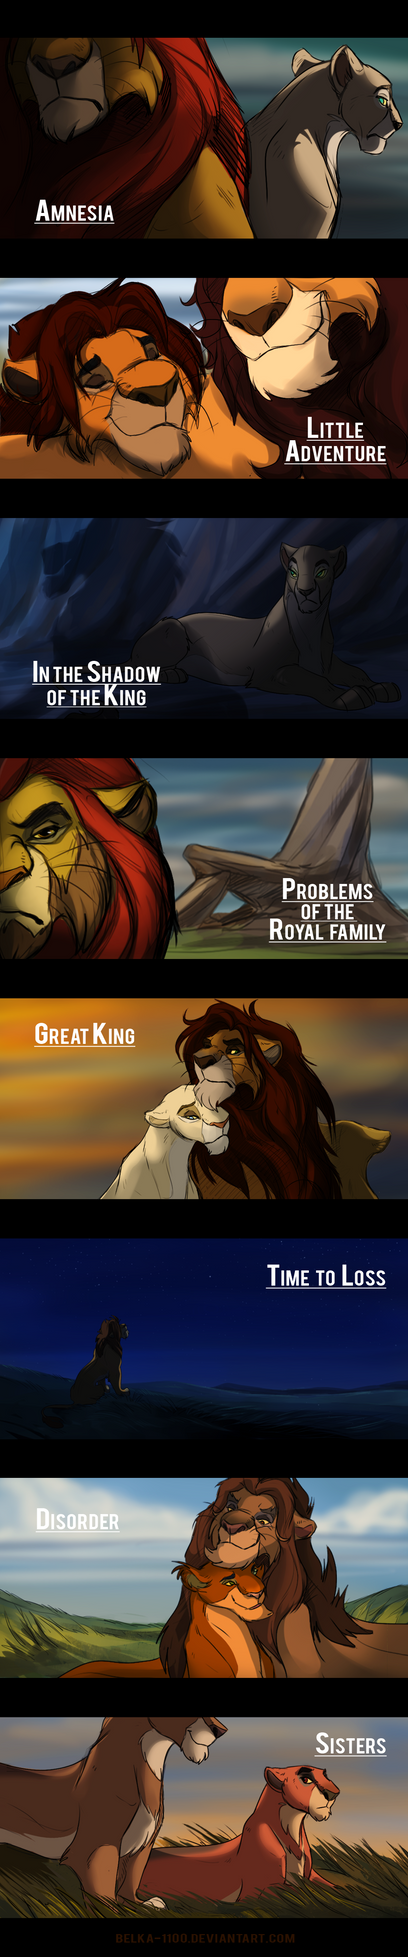 The Lion King comics preview by Belka-1100